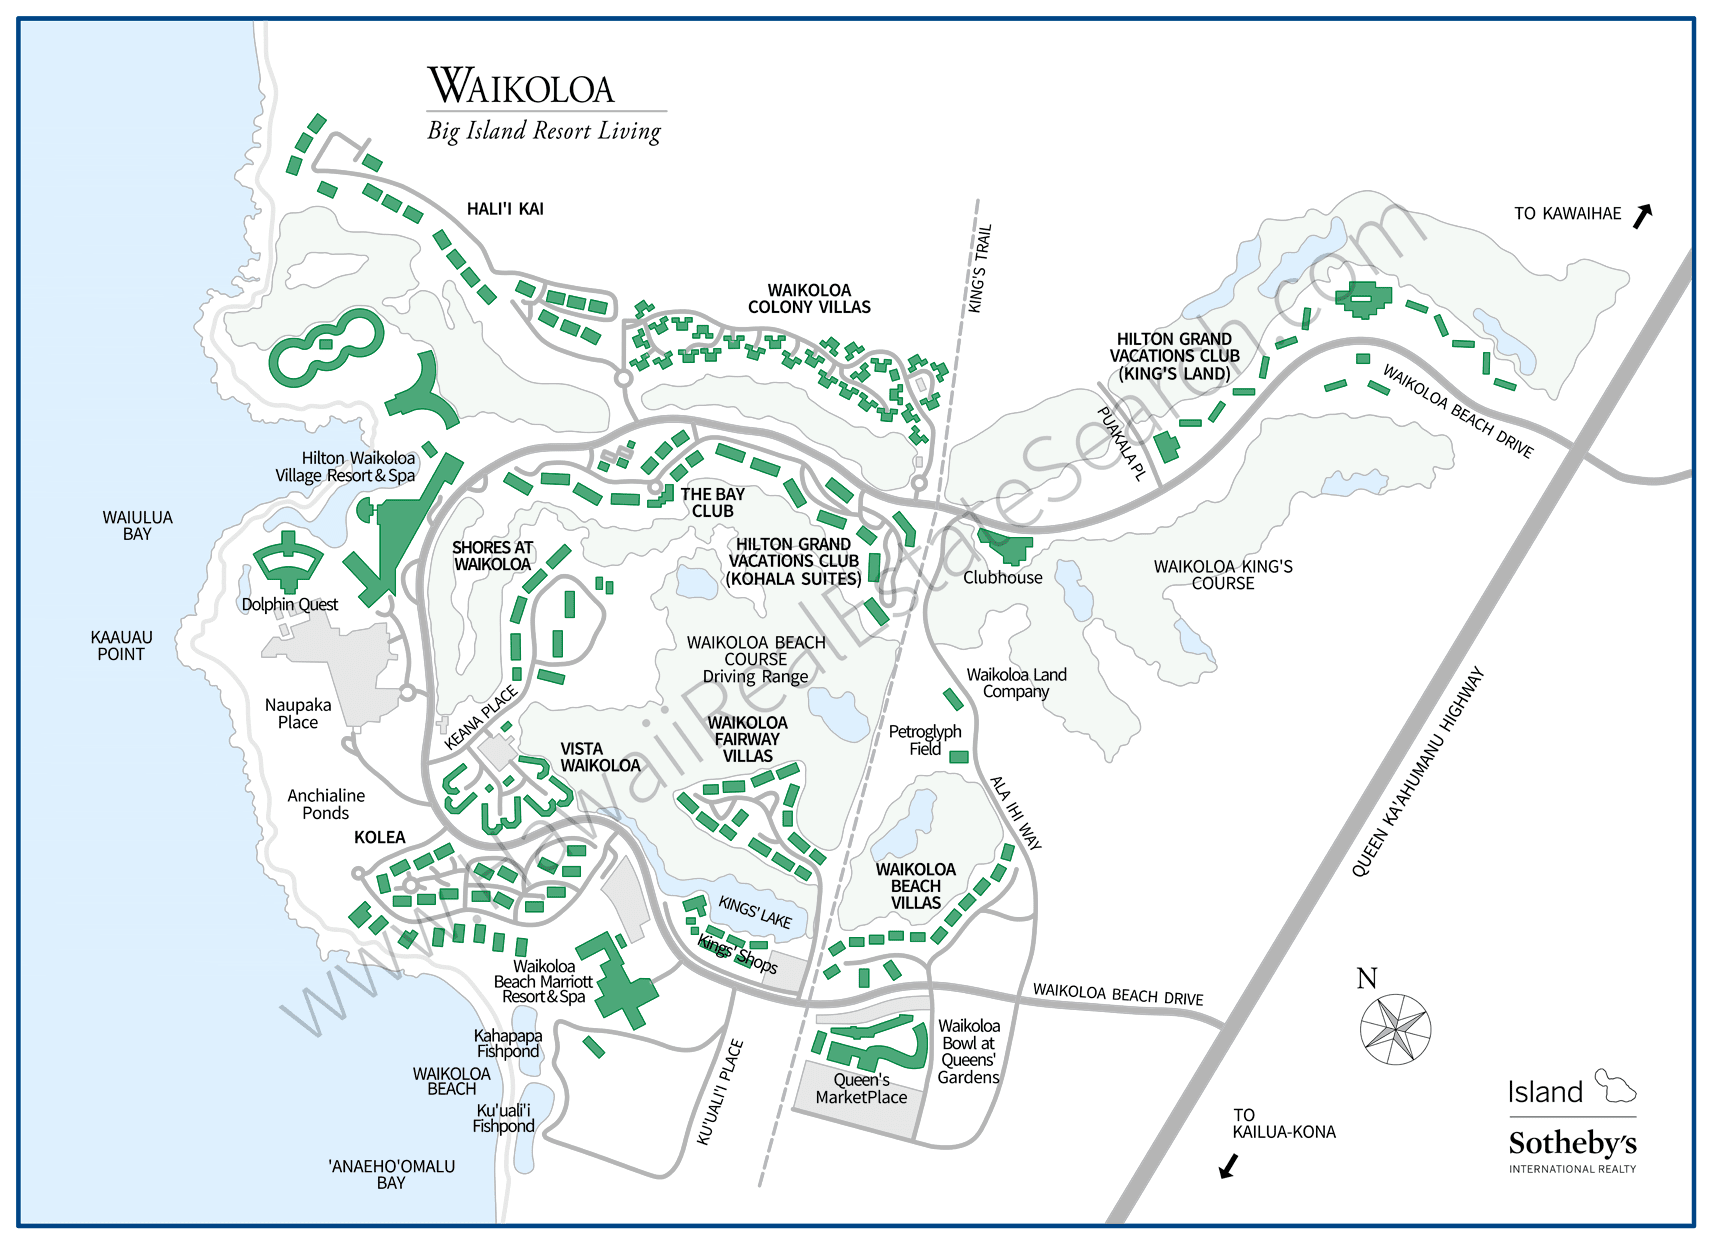 Waikoloa Resort Map Updated 2018